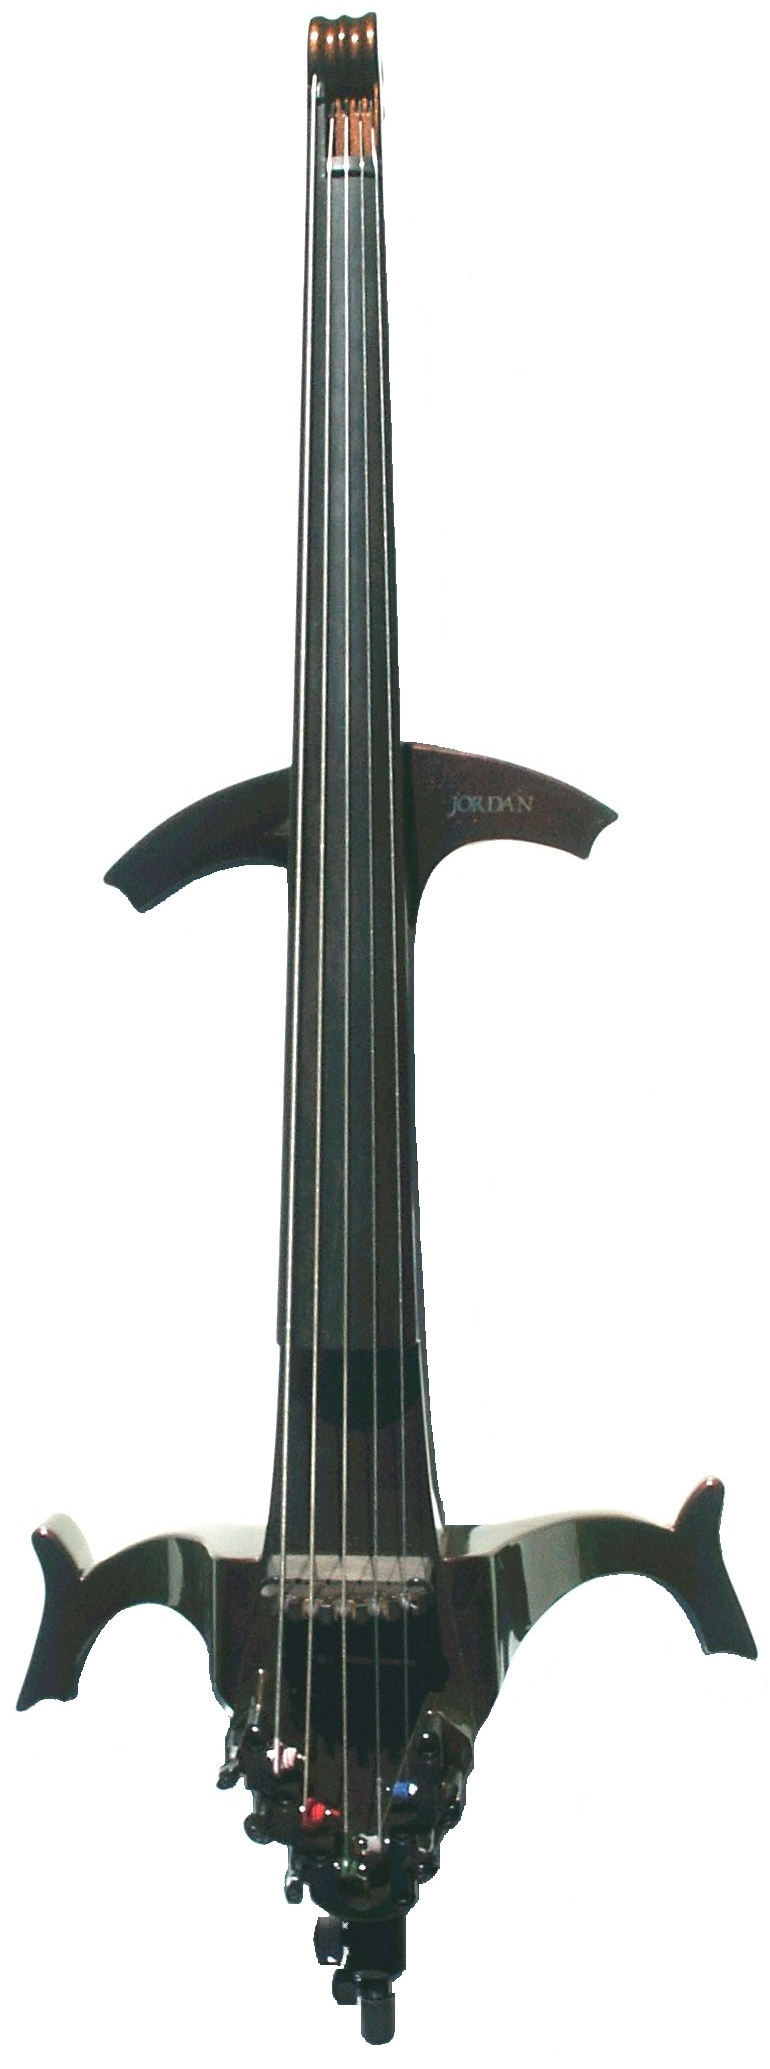 Original Jordan Electric Cello